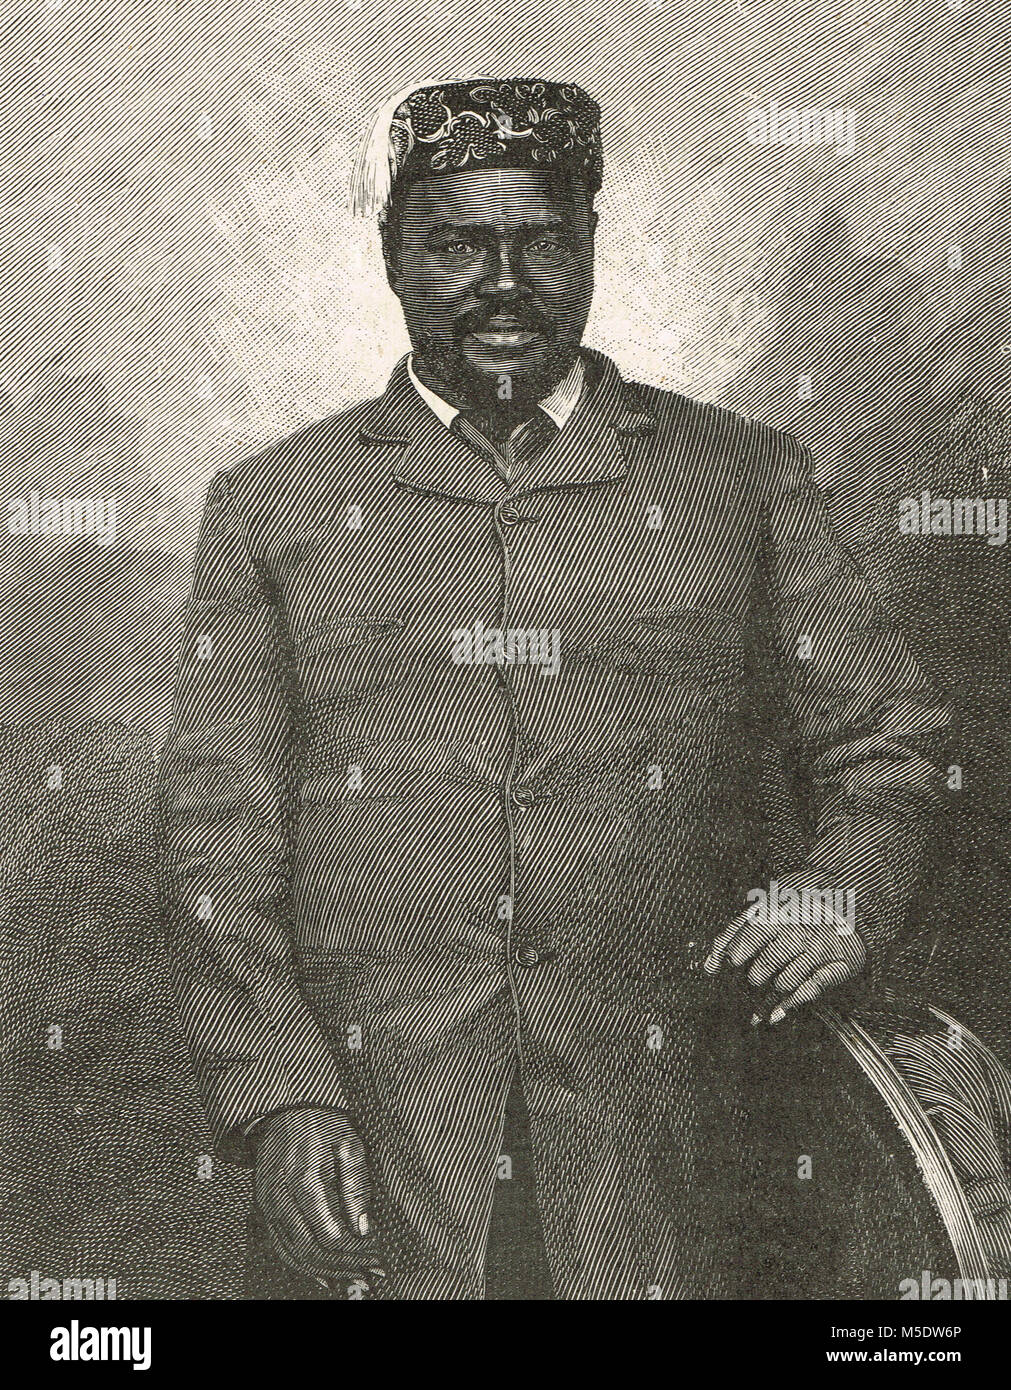 Cetshwayo kaMpande, king of the Zulu Kingdom from 1873 to 1879 - Stock Image